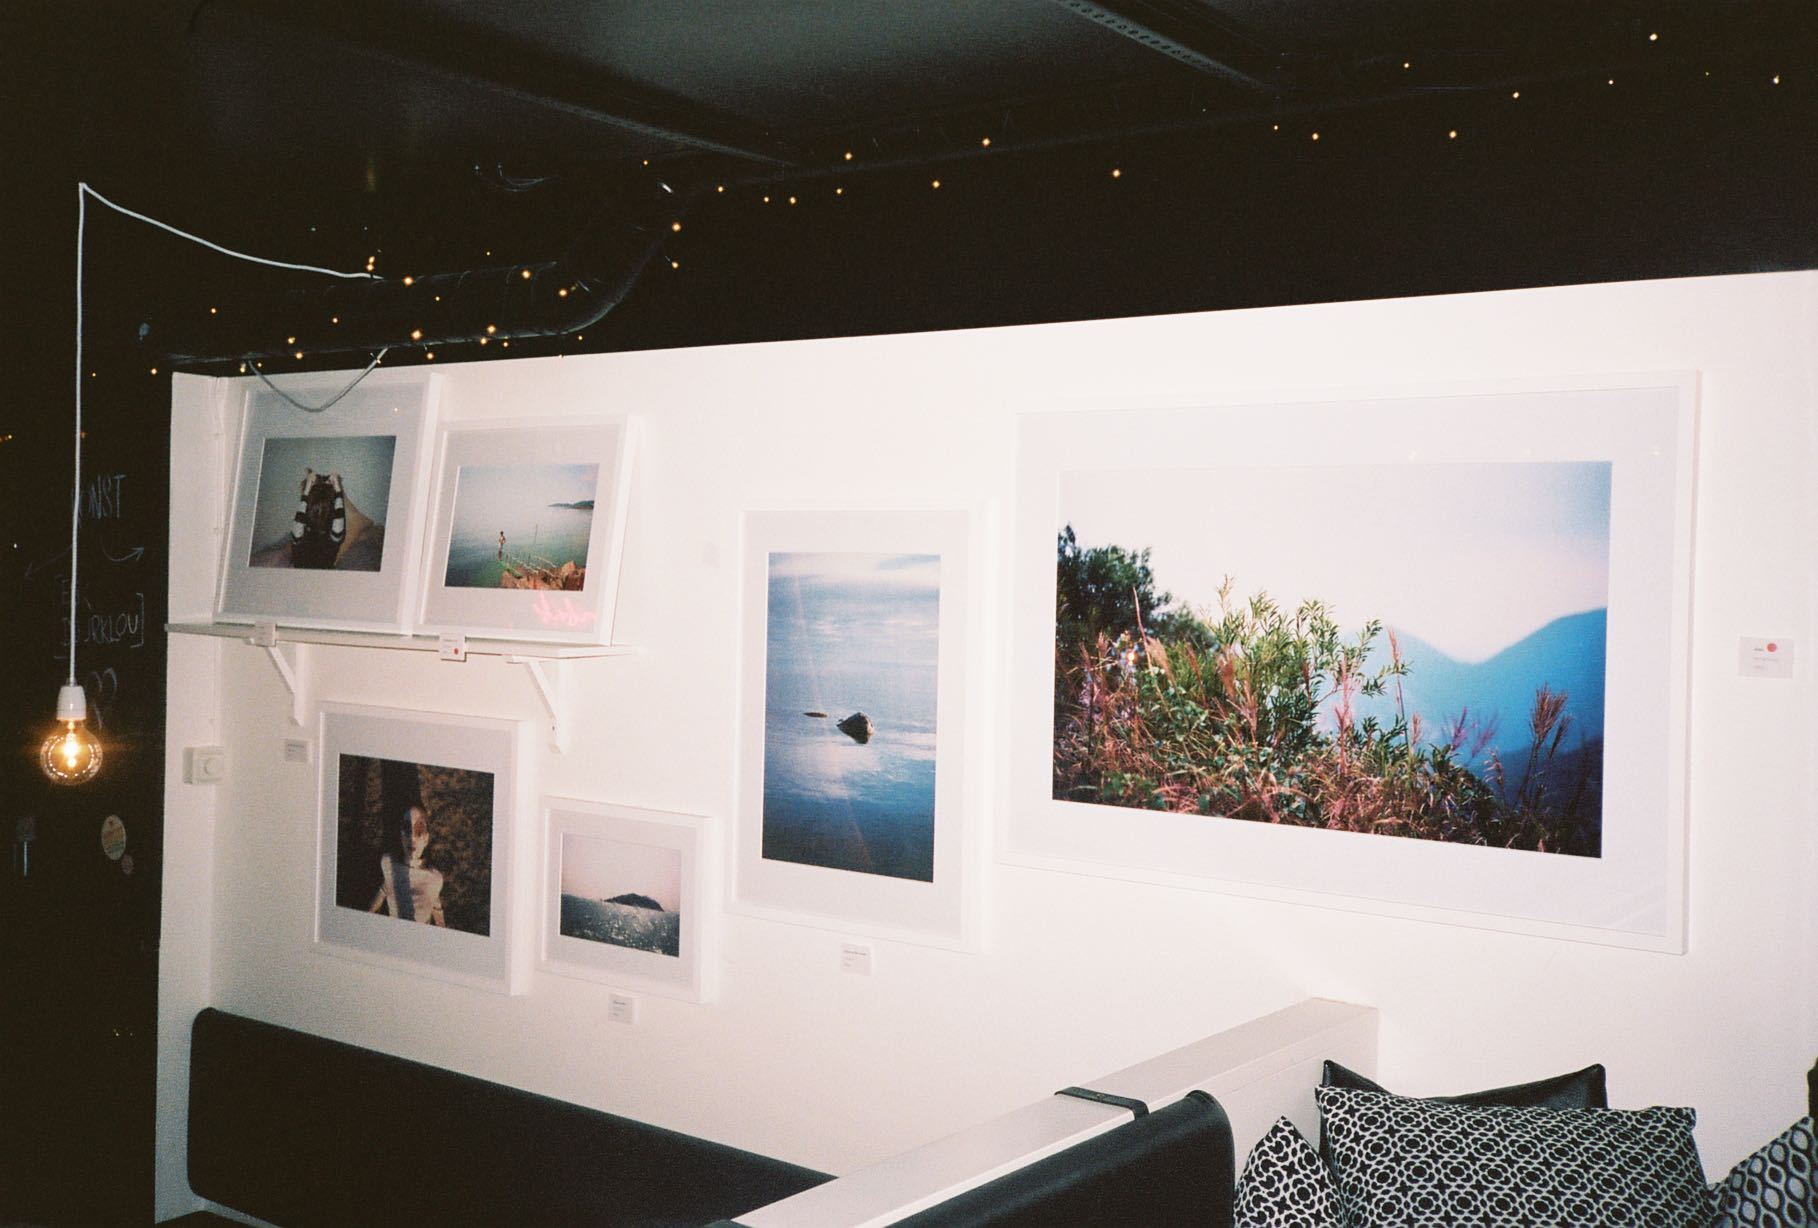 Pictures from Eriks solo exhibition 'A better place' in Stockholm, Sweden. May 2017